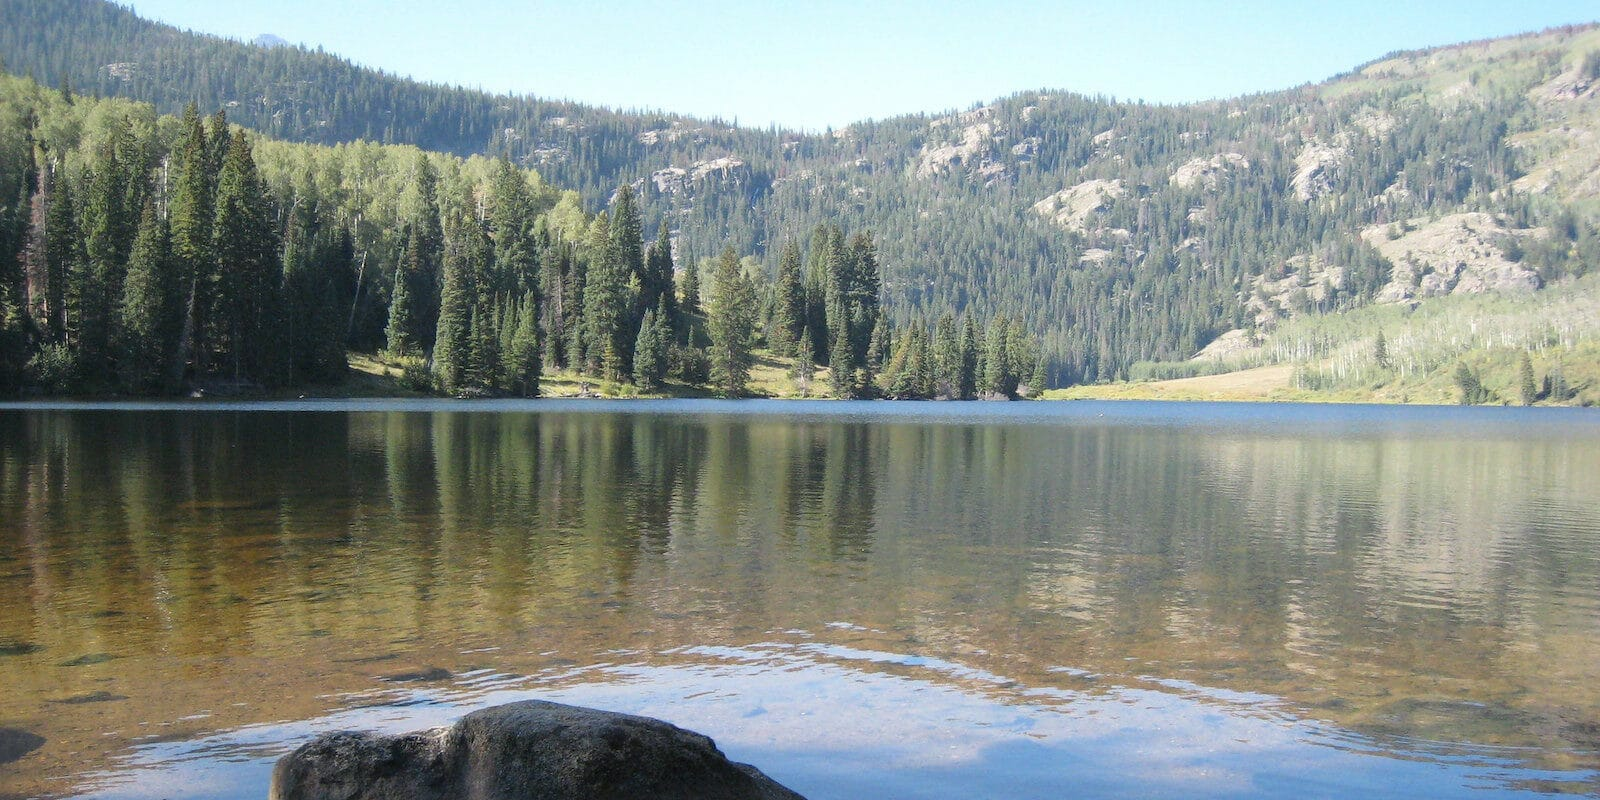 Image of the Upper Cataract Lake in Heeney, Colorado